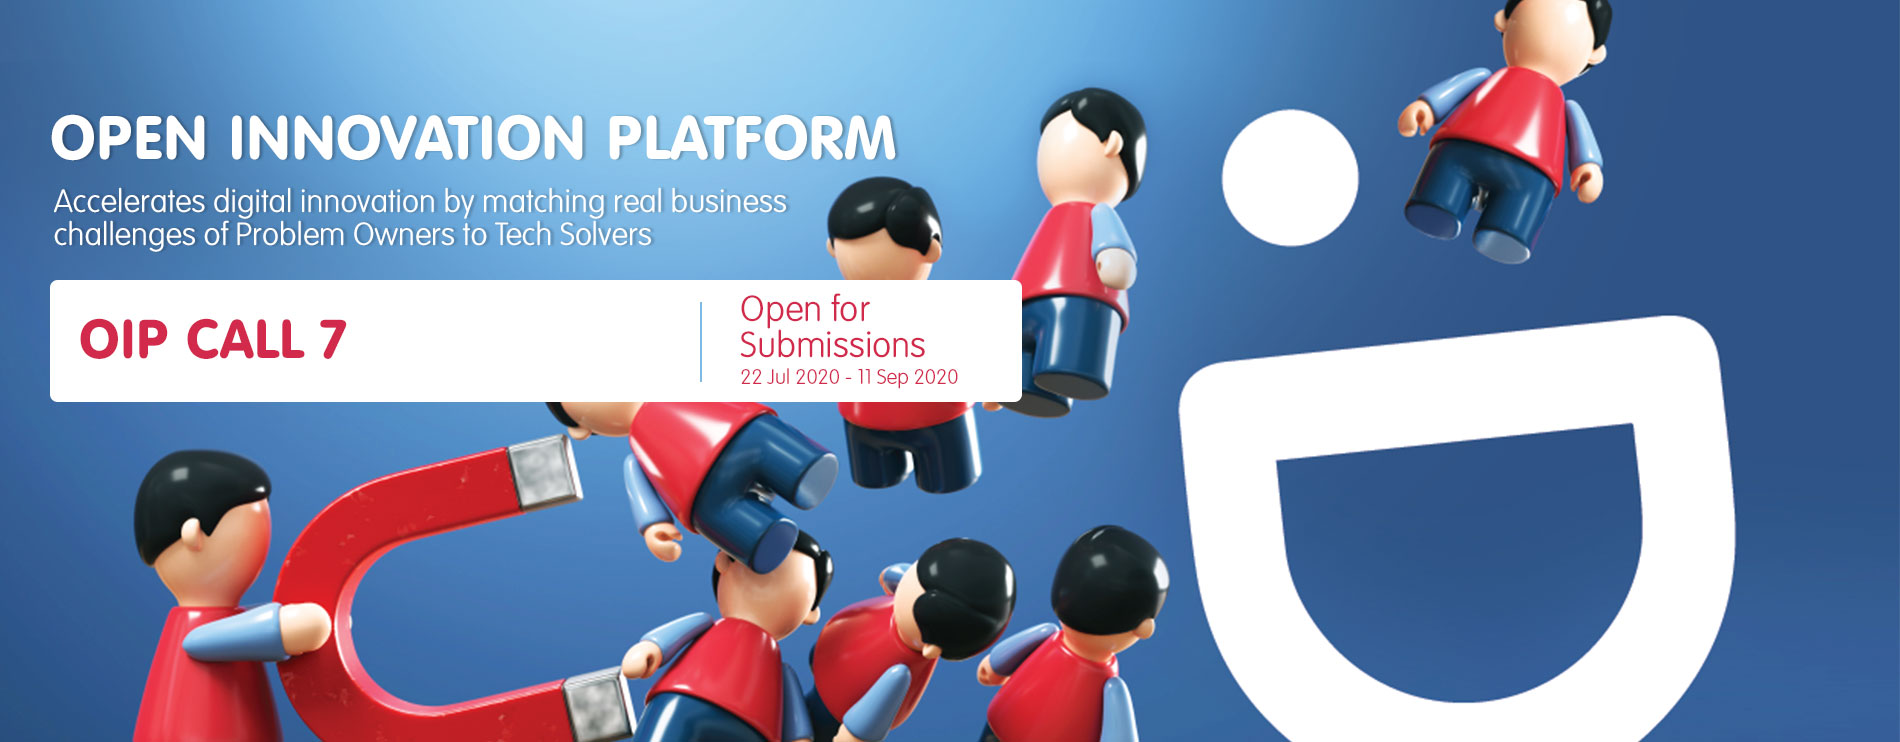 Open Innovation Platform Call 7